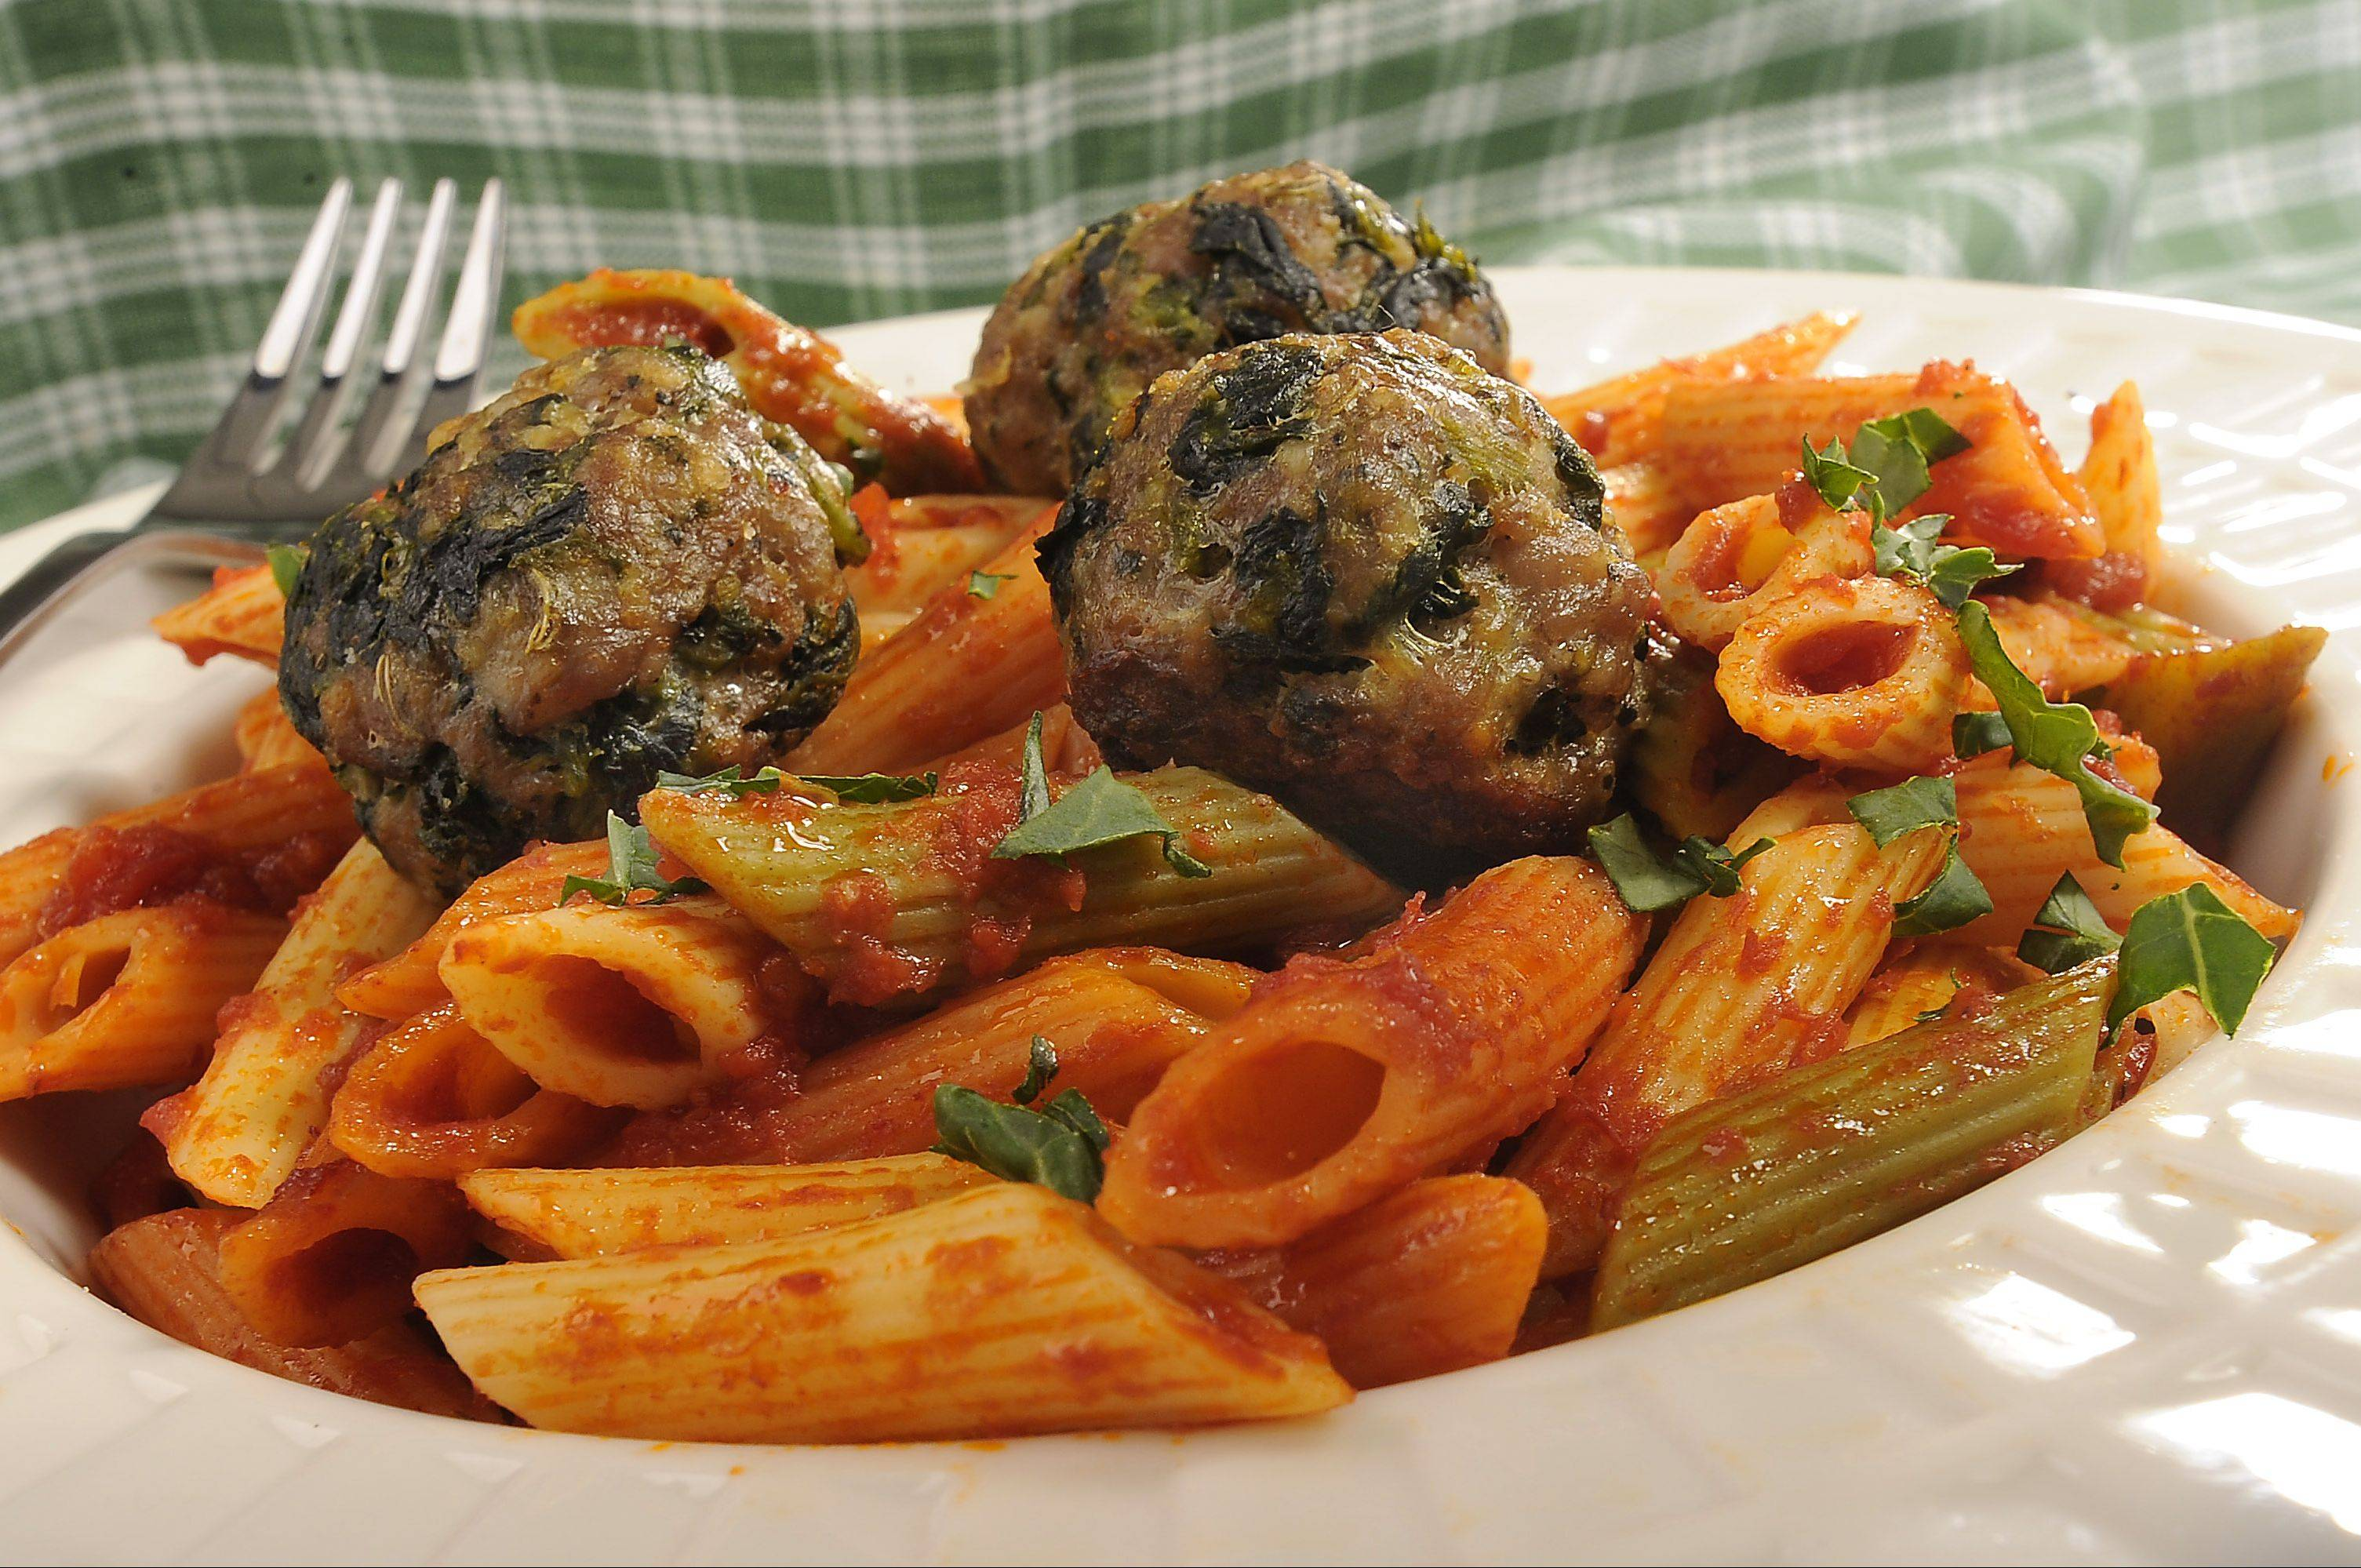 Spinach gives a healthy boost to ground beef and Italian sausage meatballs.